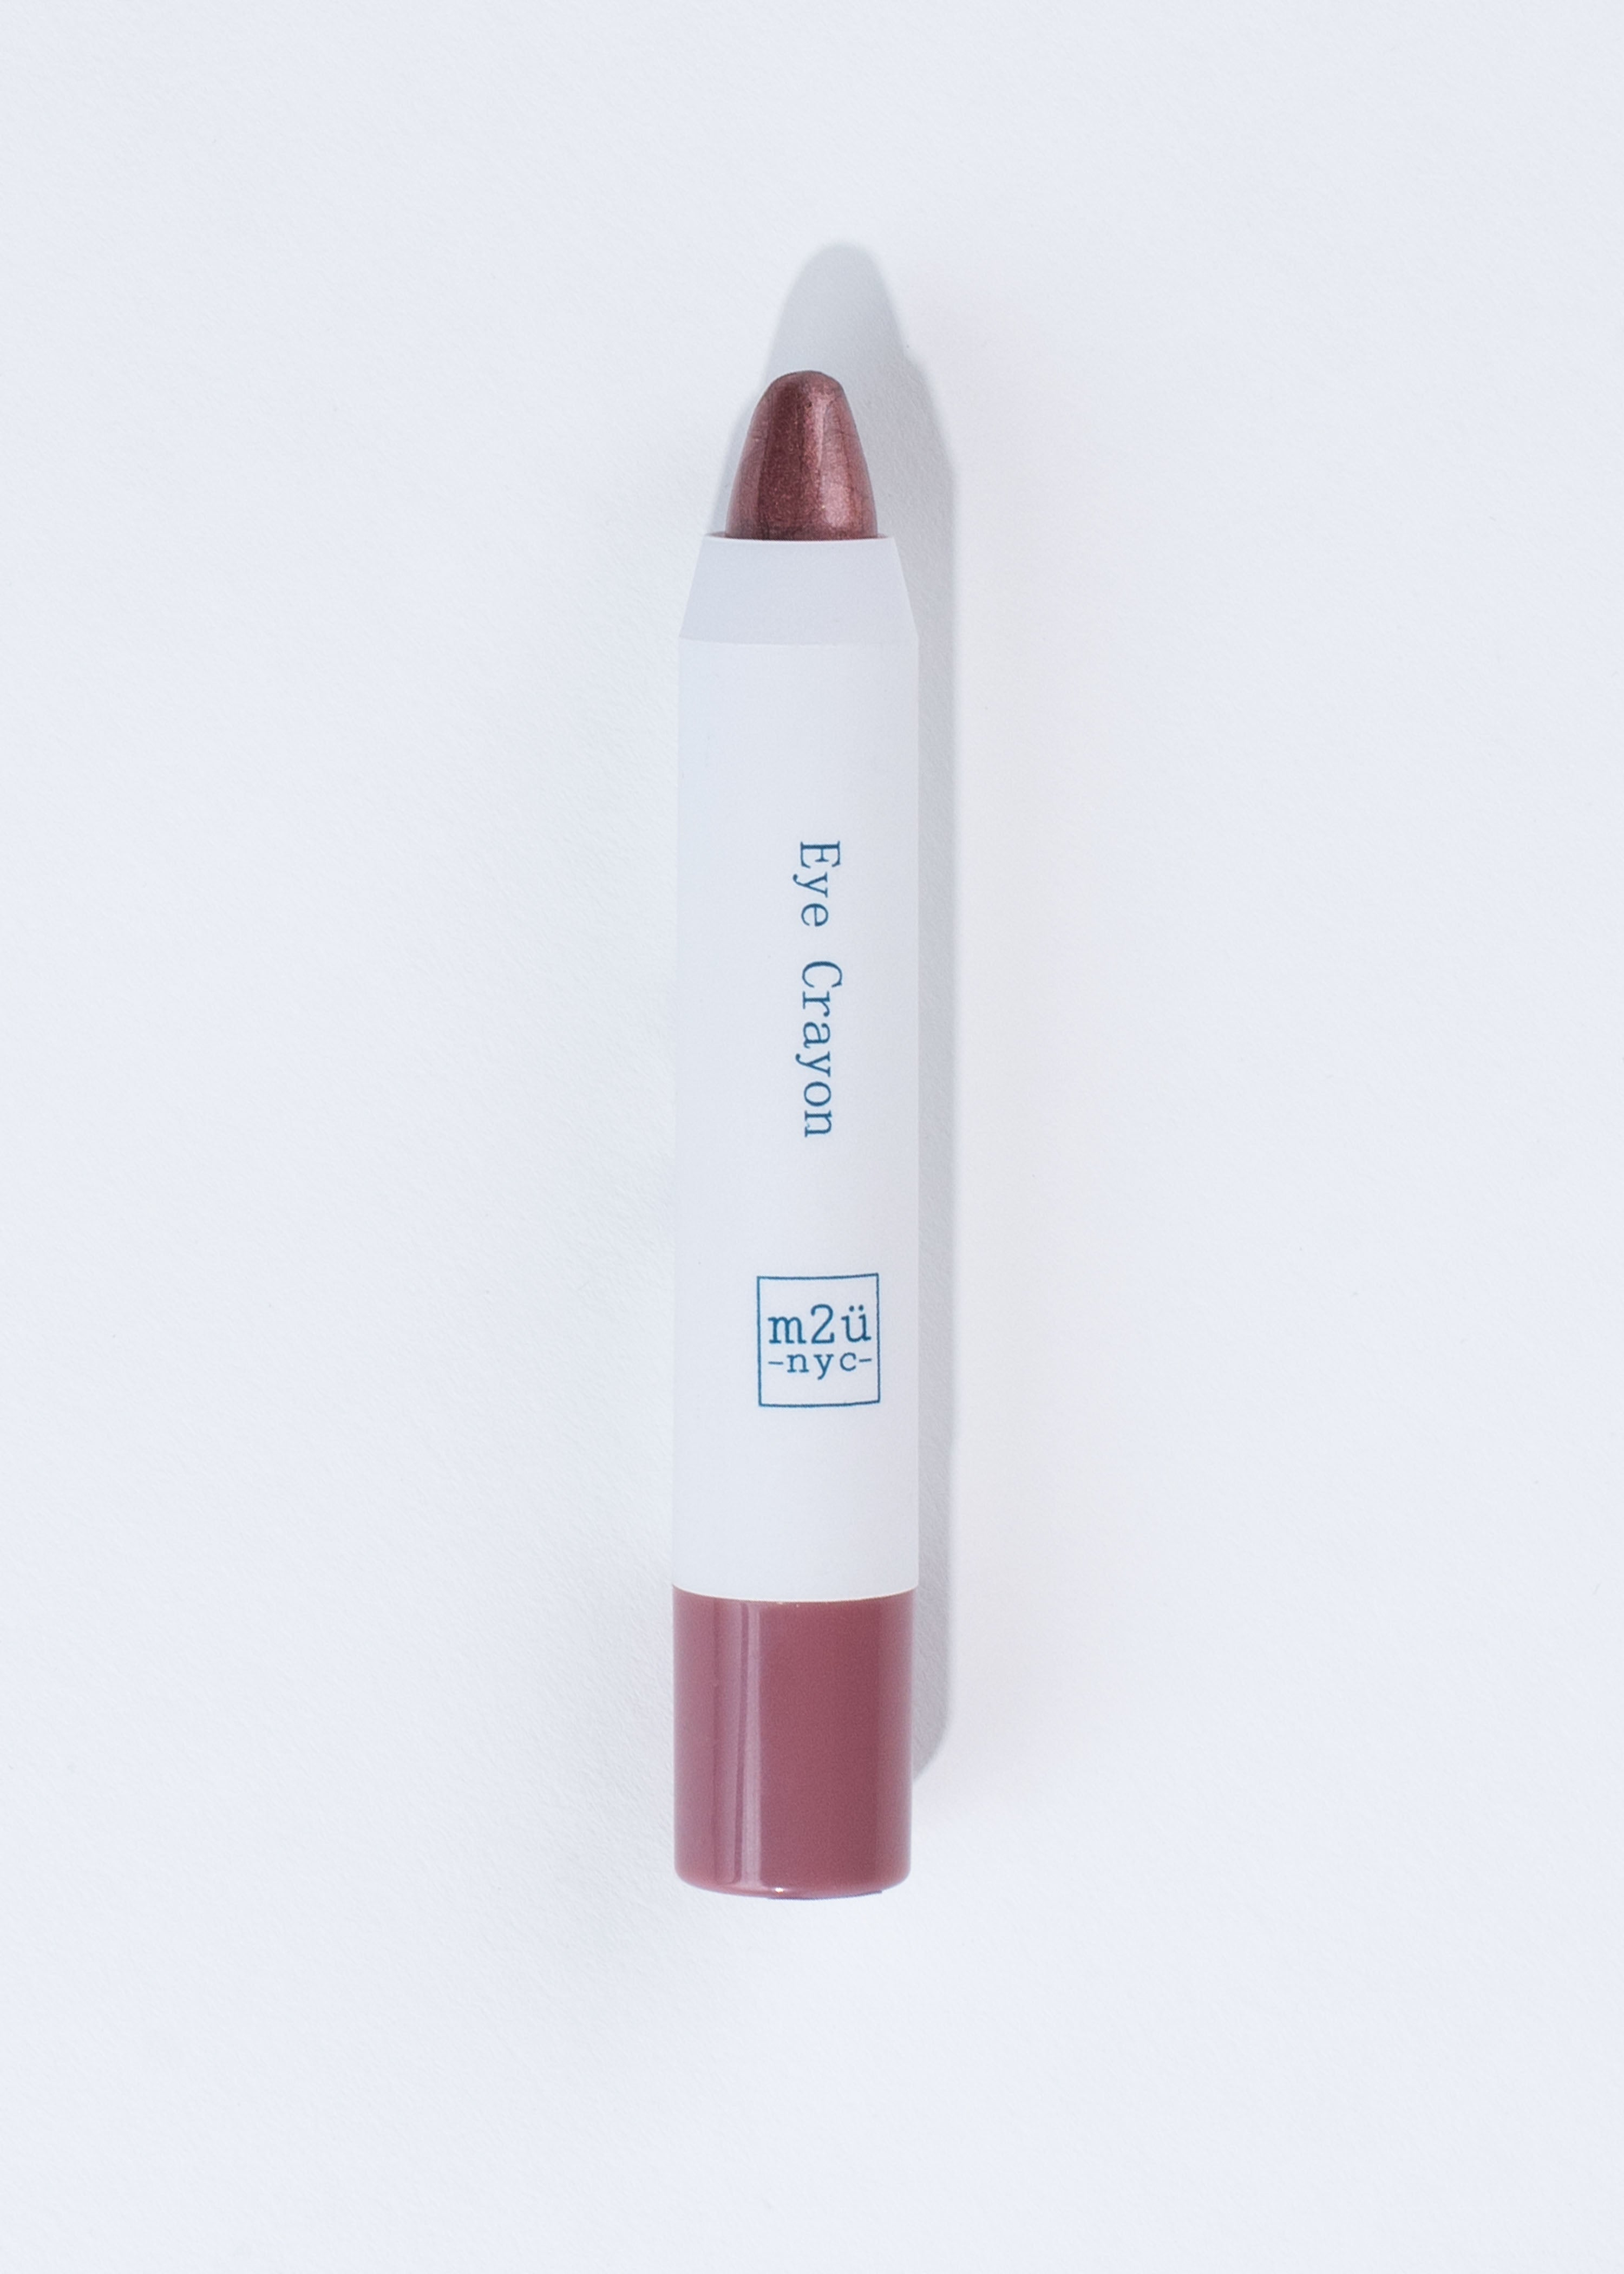 pencil-like eyeshadow crayon in shade burgundy